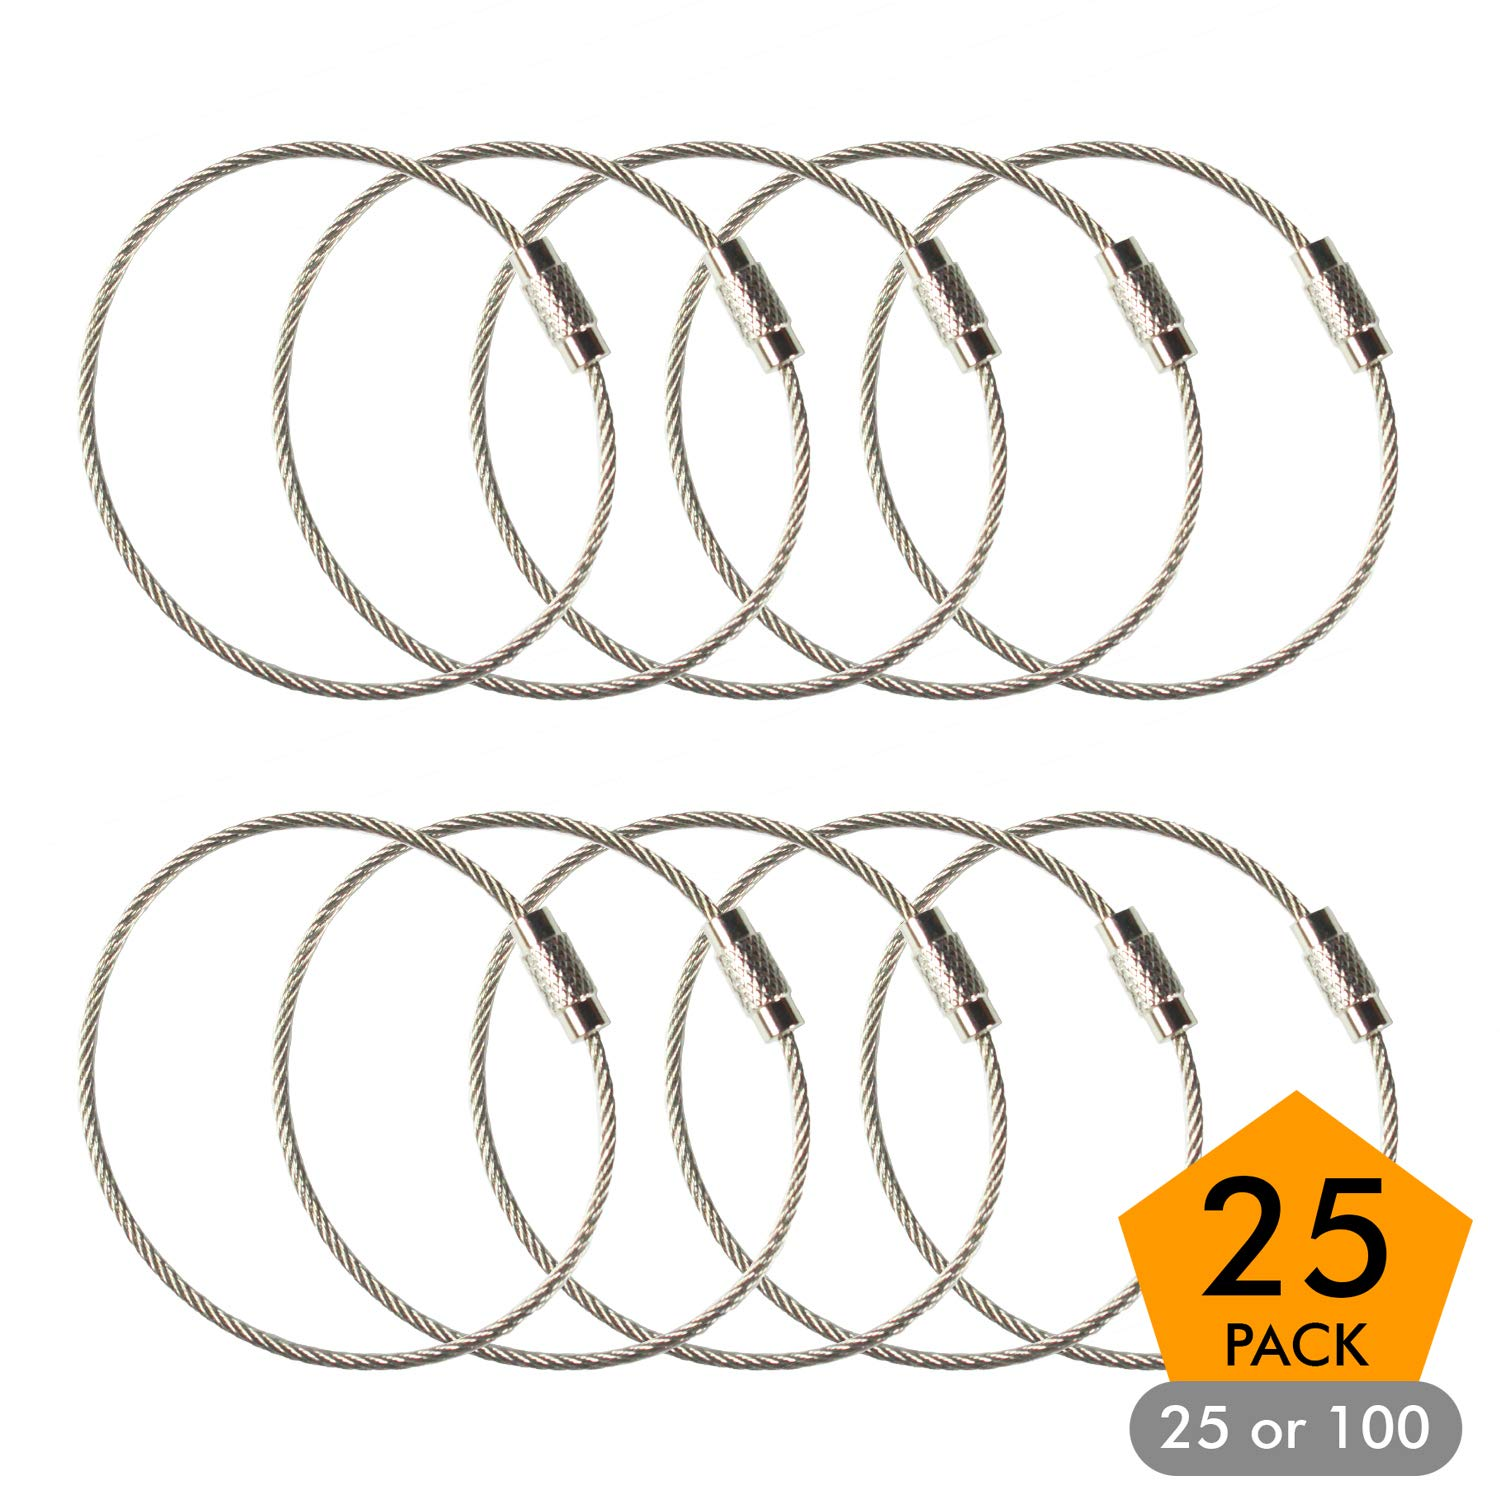 Amazon.com   Stainless Steel Wire Keychains 1.5mm 6.3 Inches Aircraft Cable  Key Ring Loops for Hanging Luggage Tags or ID Tags (25 Pack)   Office  Products 95ed4a1e2